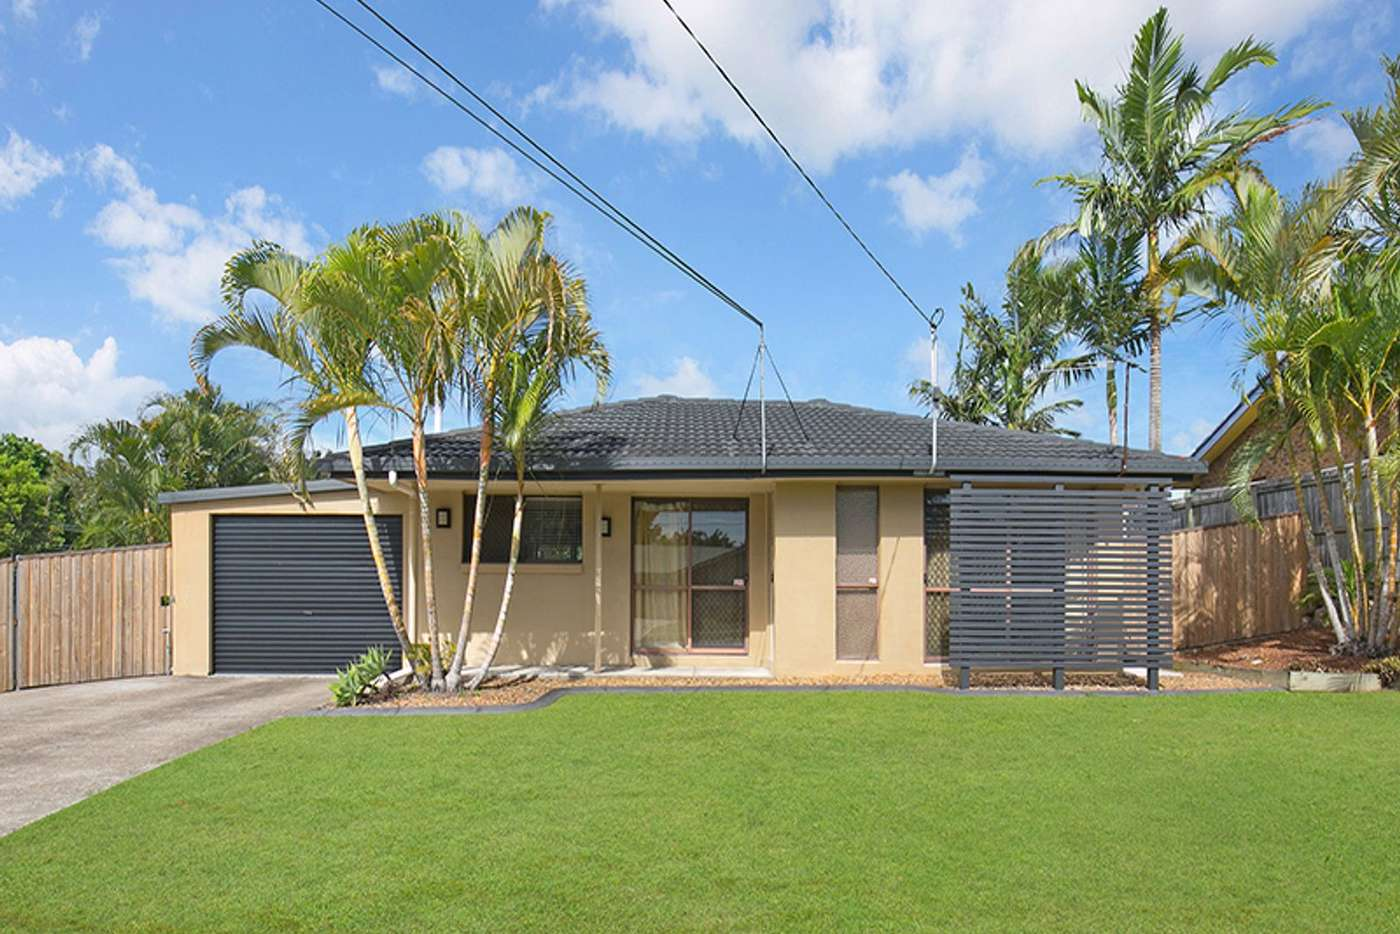 Main view of Homely house listing, 38 BARBARALLA DR, Springwood QLD 4127